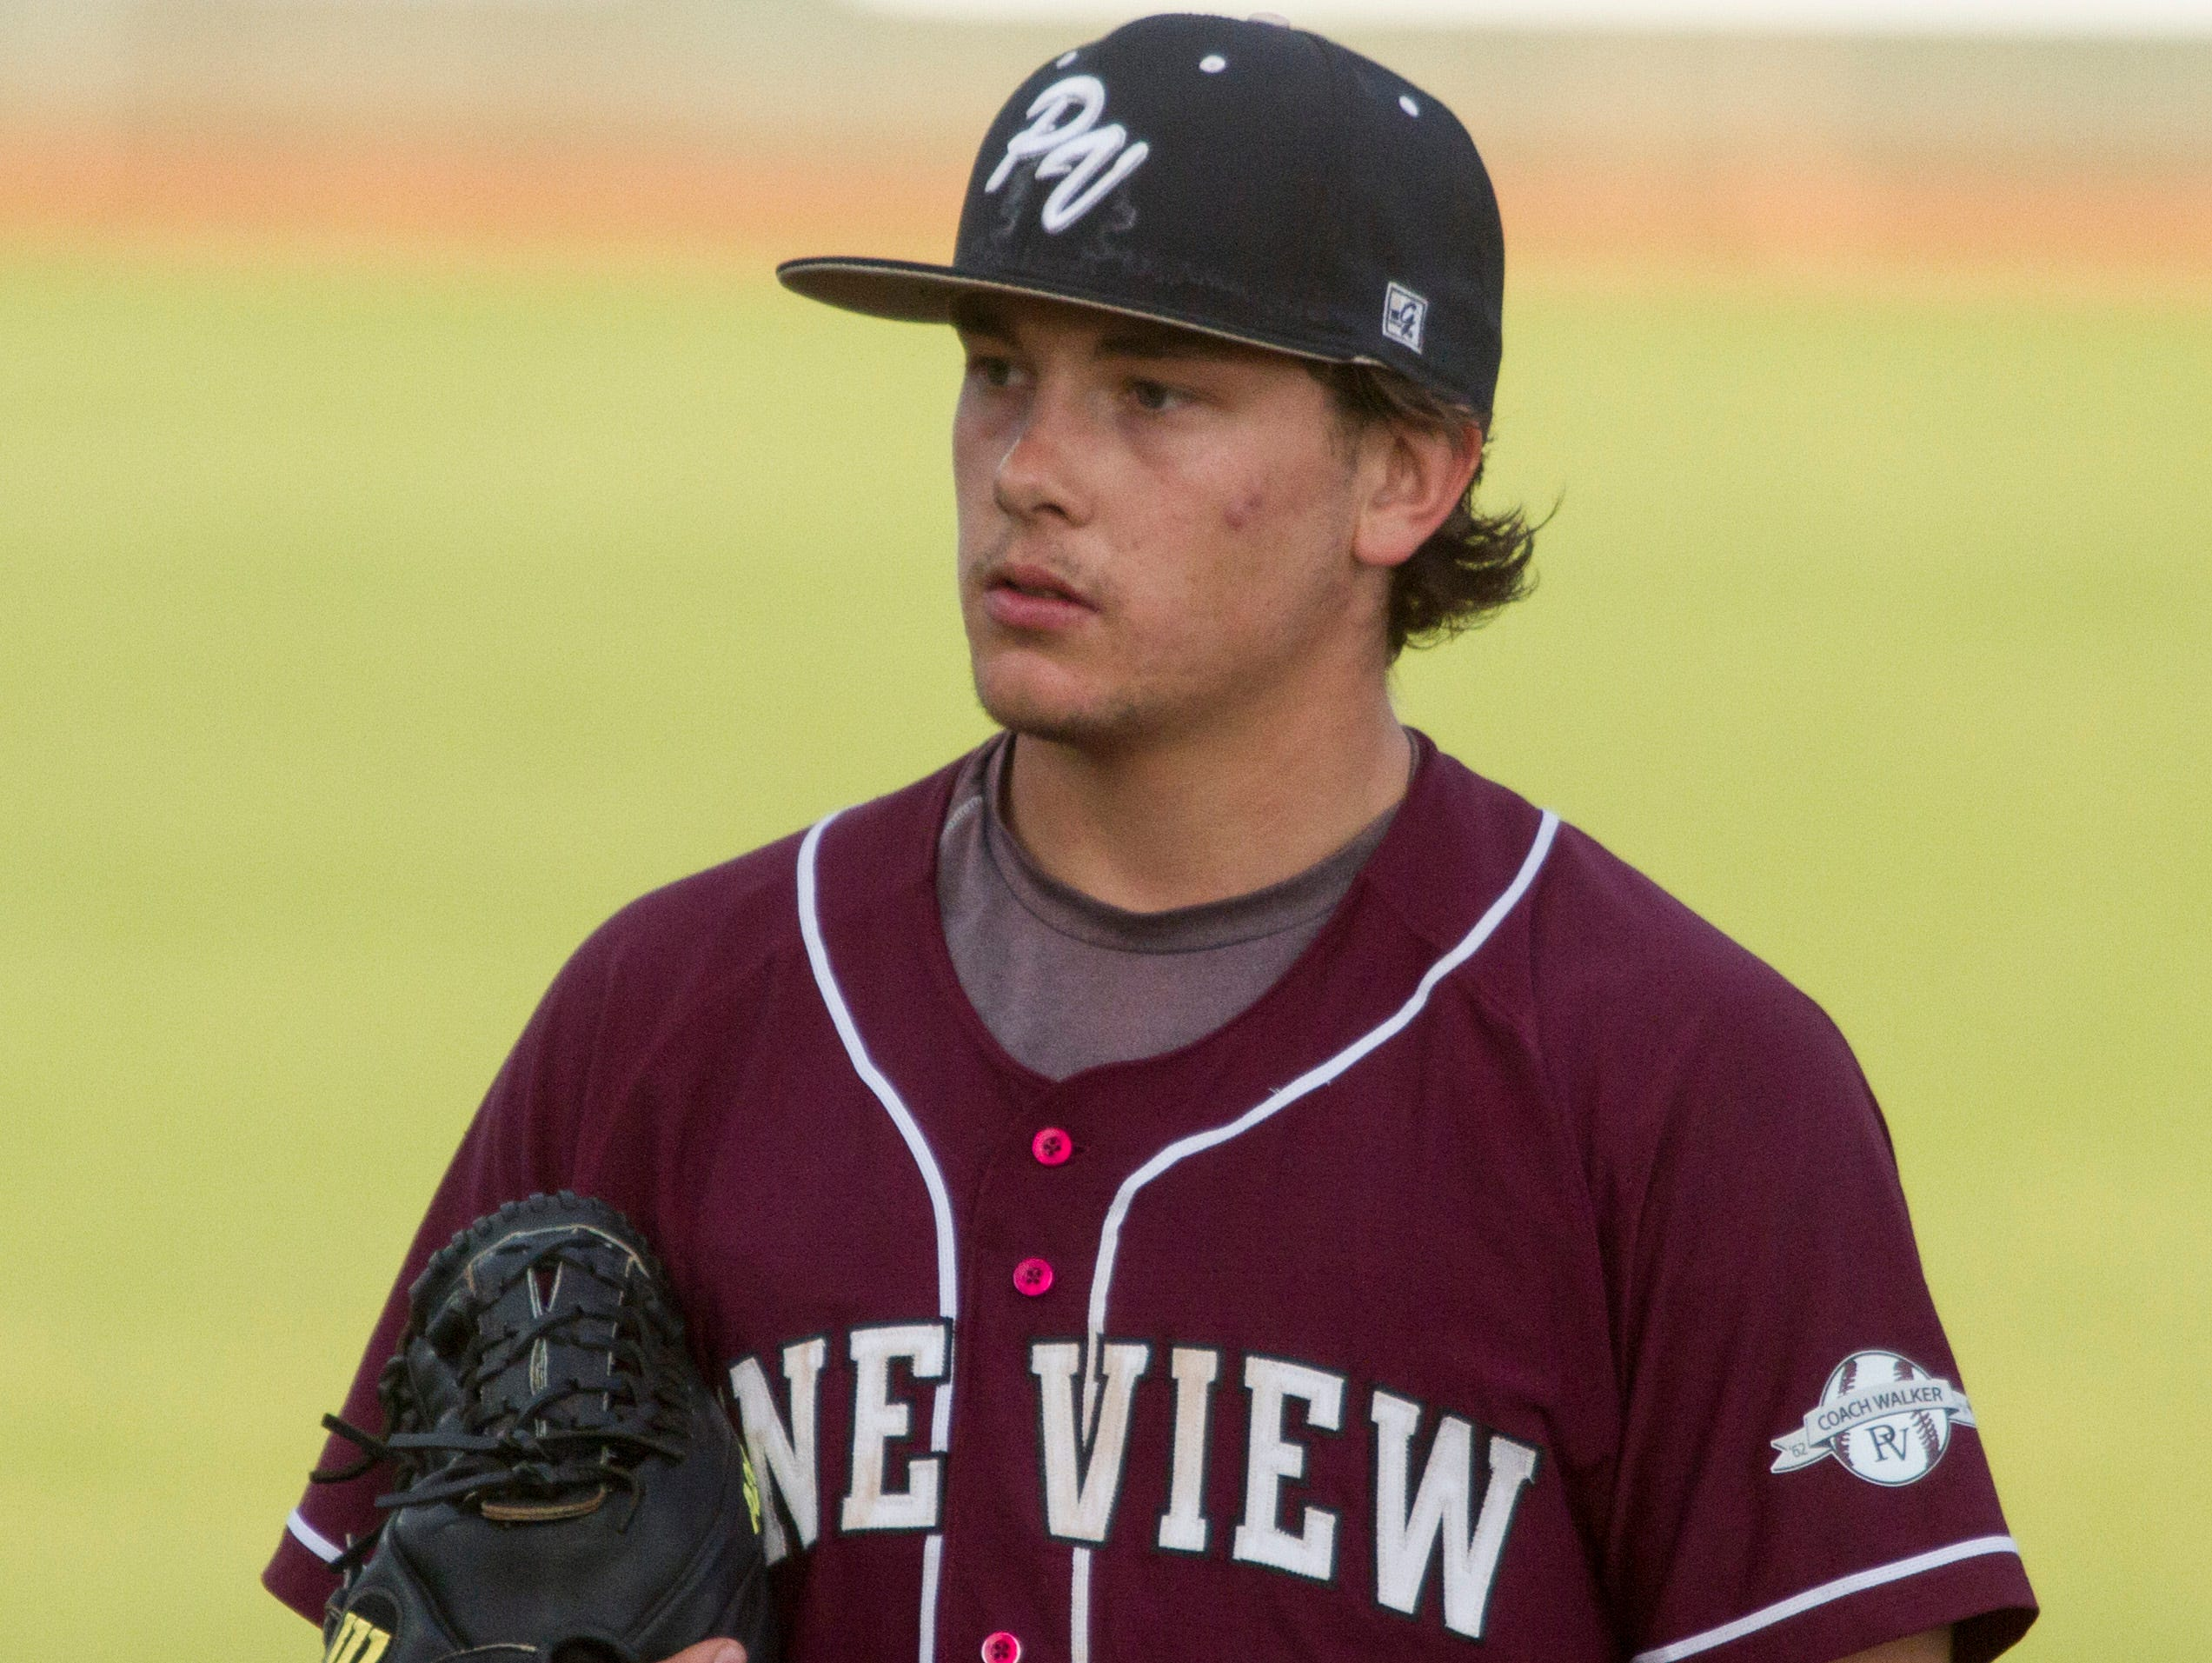 Pine View pitcher Brooks Barney threw a complete game in a 5-2 victory over Snow Canyon. The senior gave up just three hits while striking out seven Friday night.